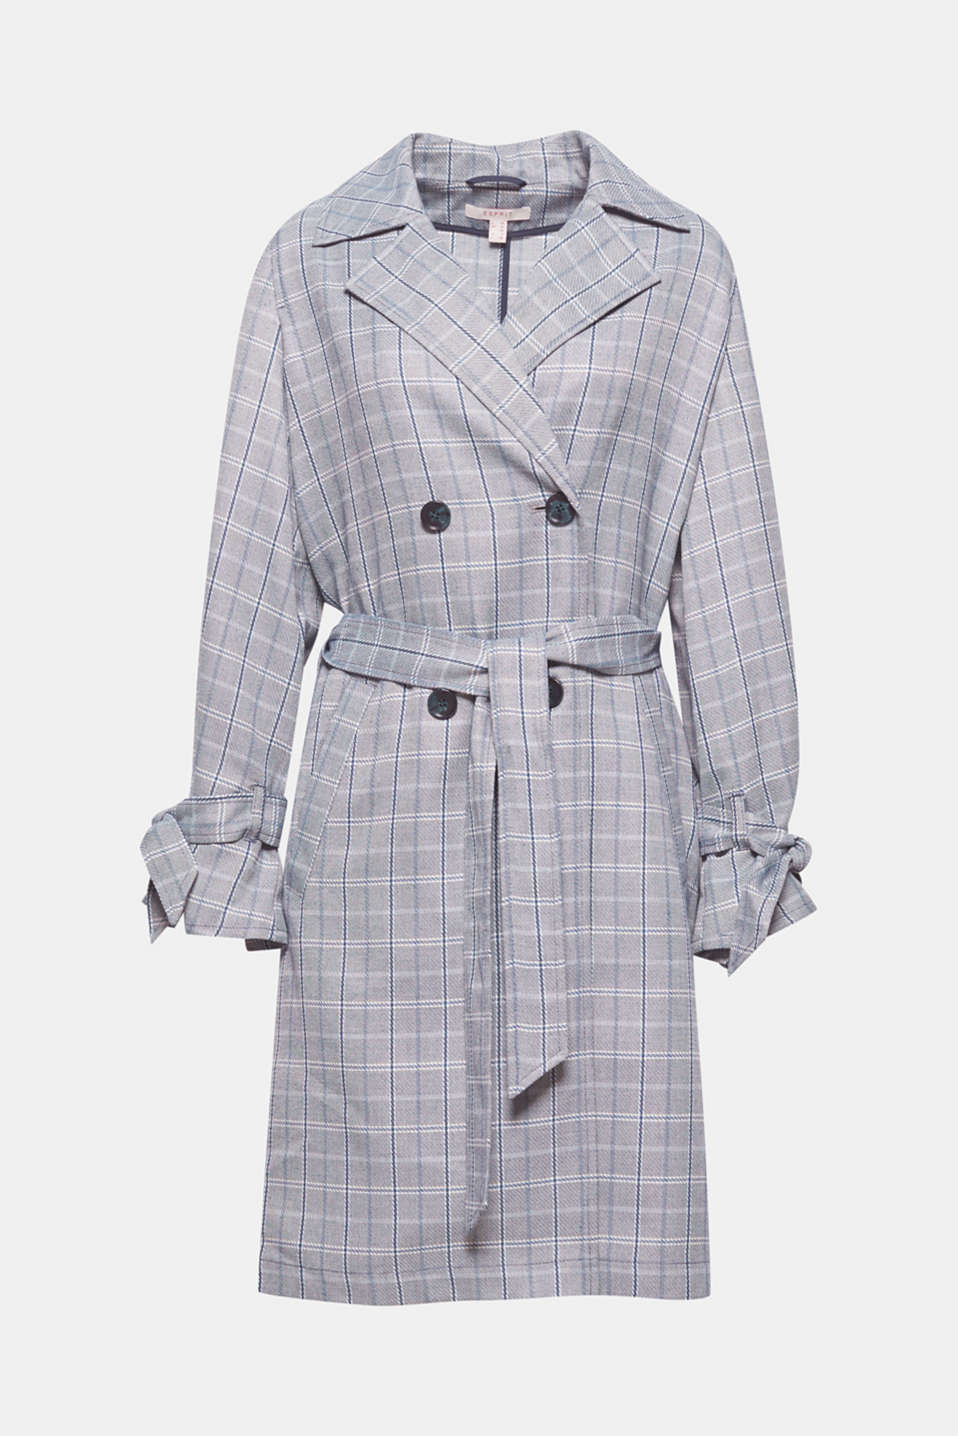 In a trendy checked look and made of a soft woven fabric, this trench coat is a stylish and functional solution for the transition between seasons.